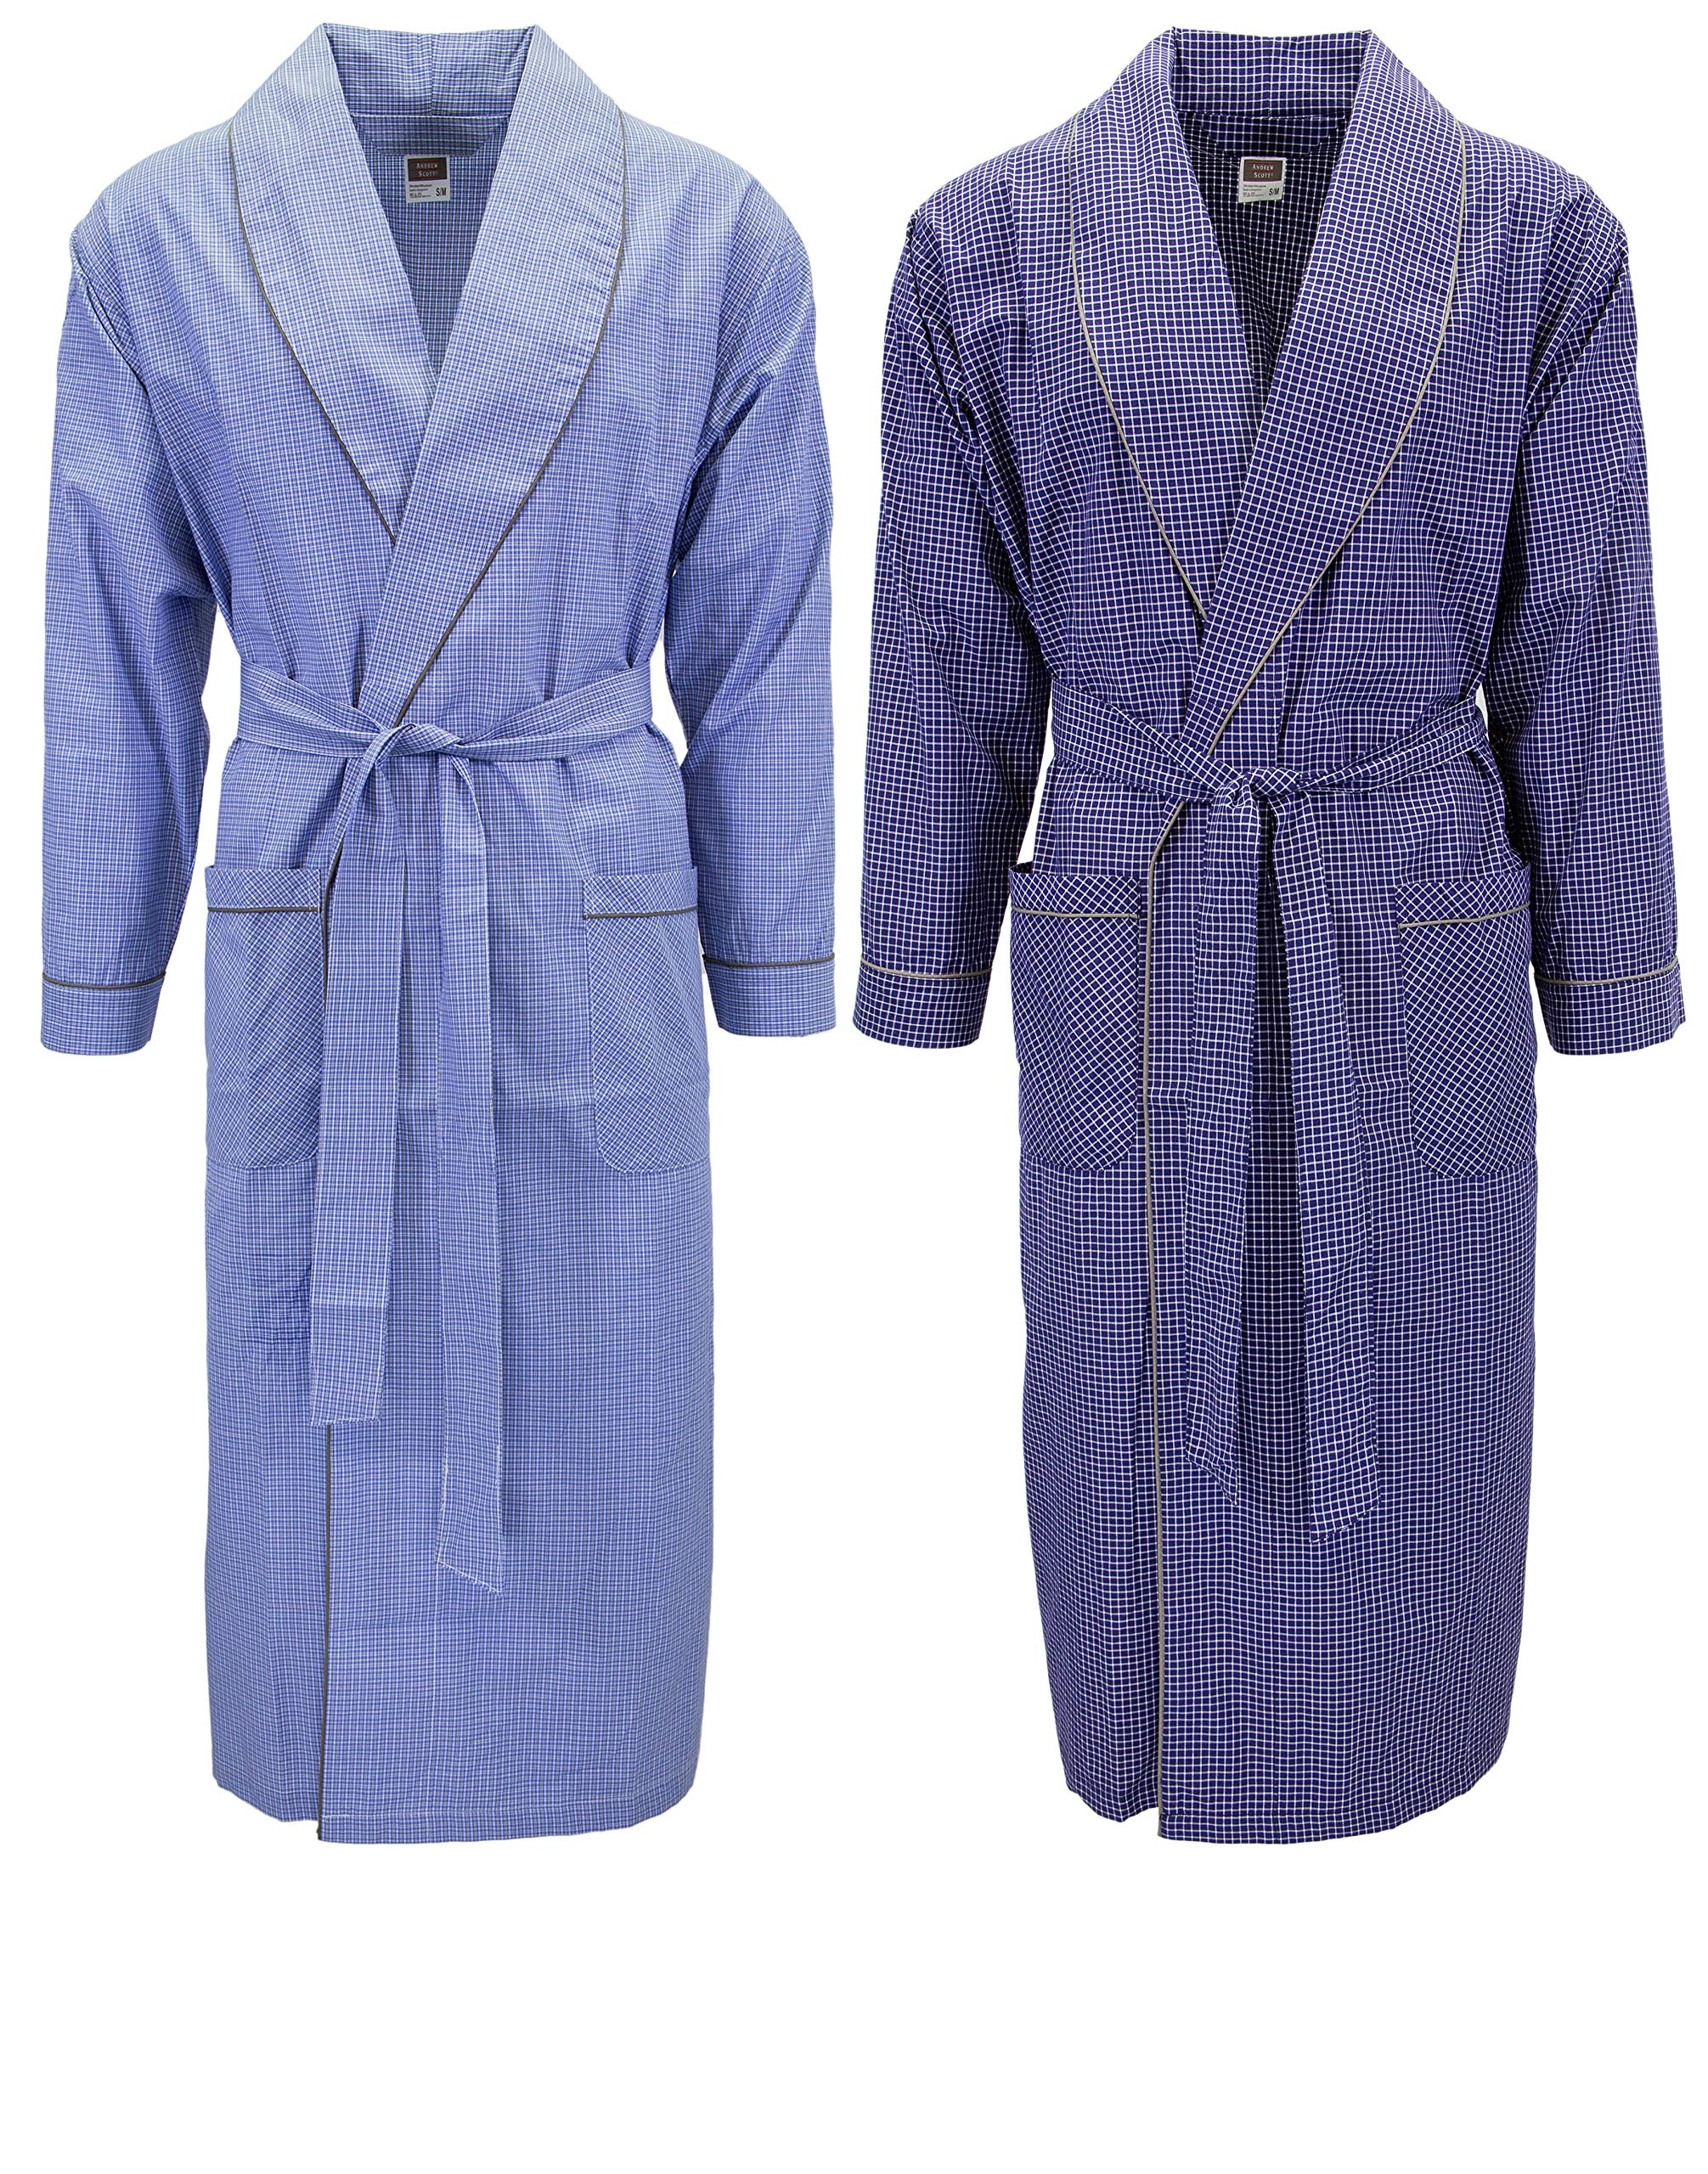 Image of Lightweight Assorted Cotton Robes for Men - 2 Pack